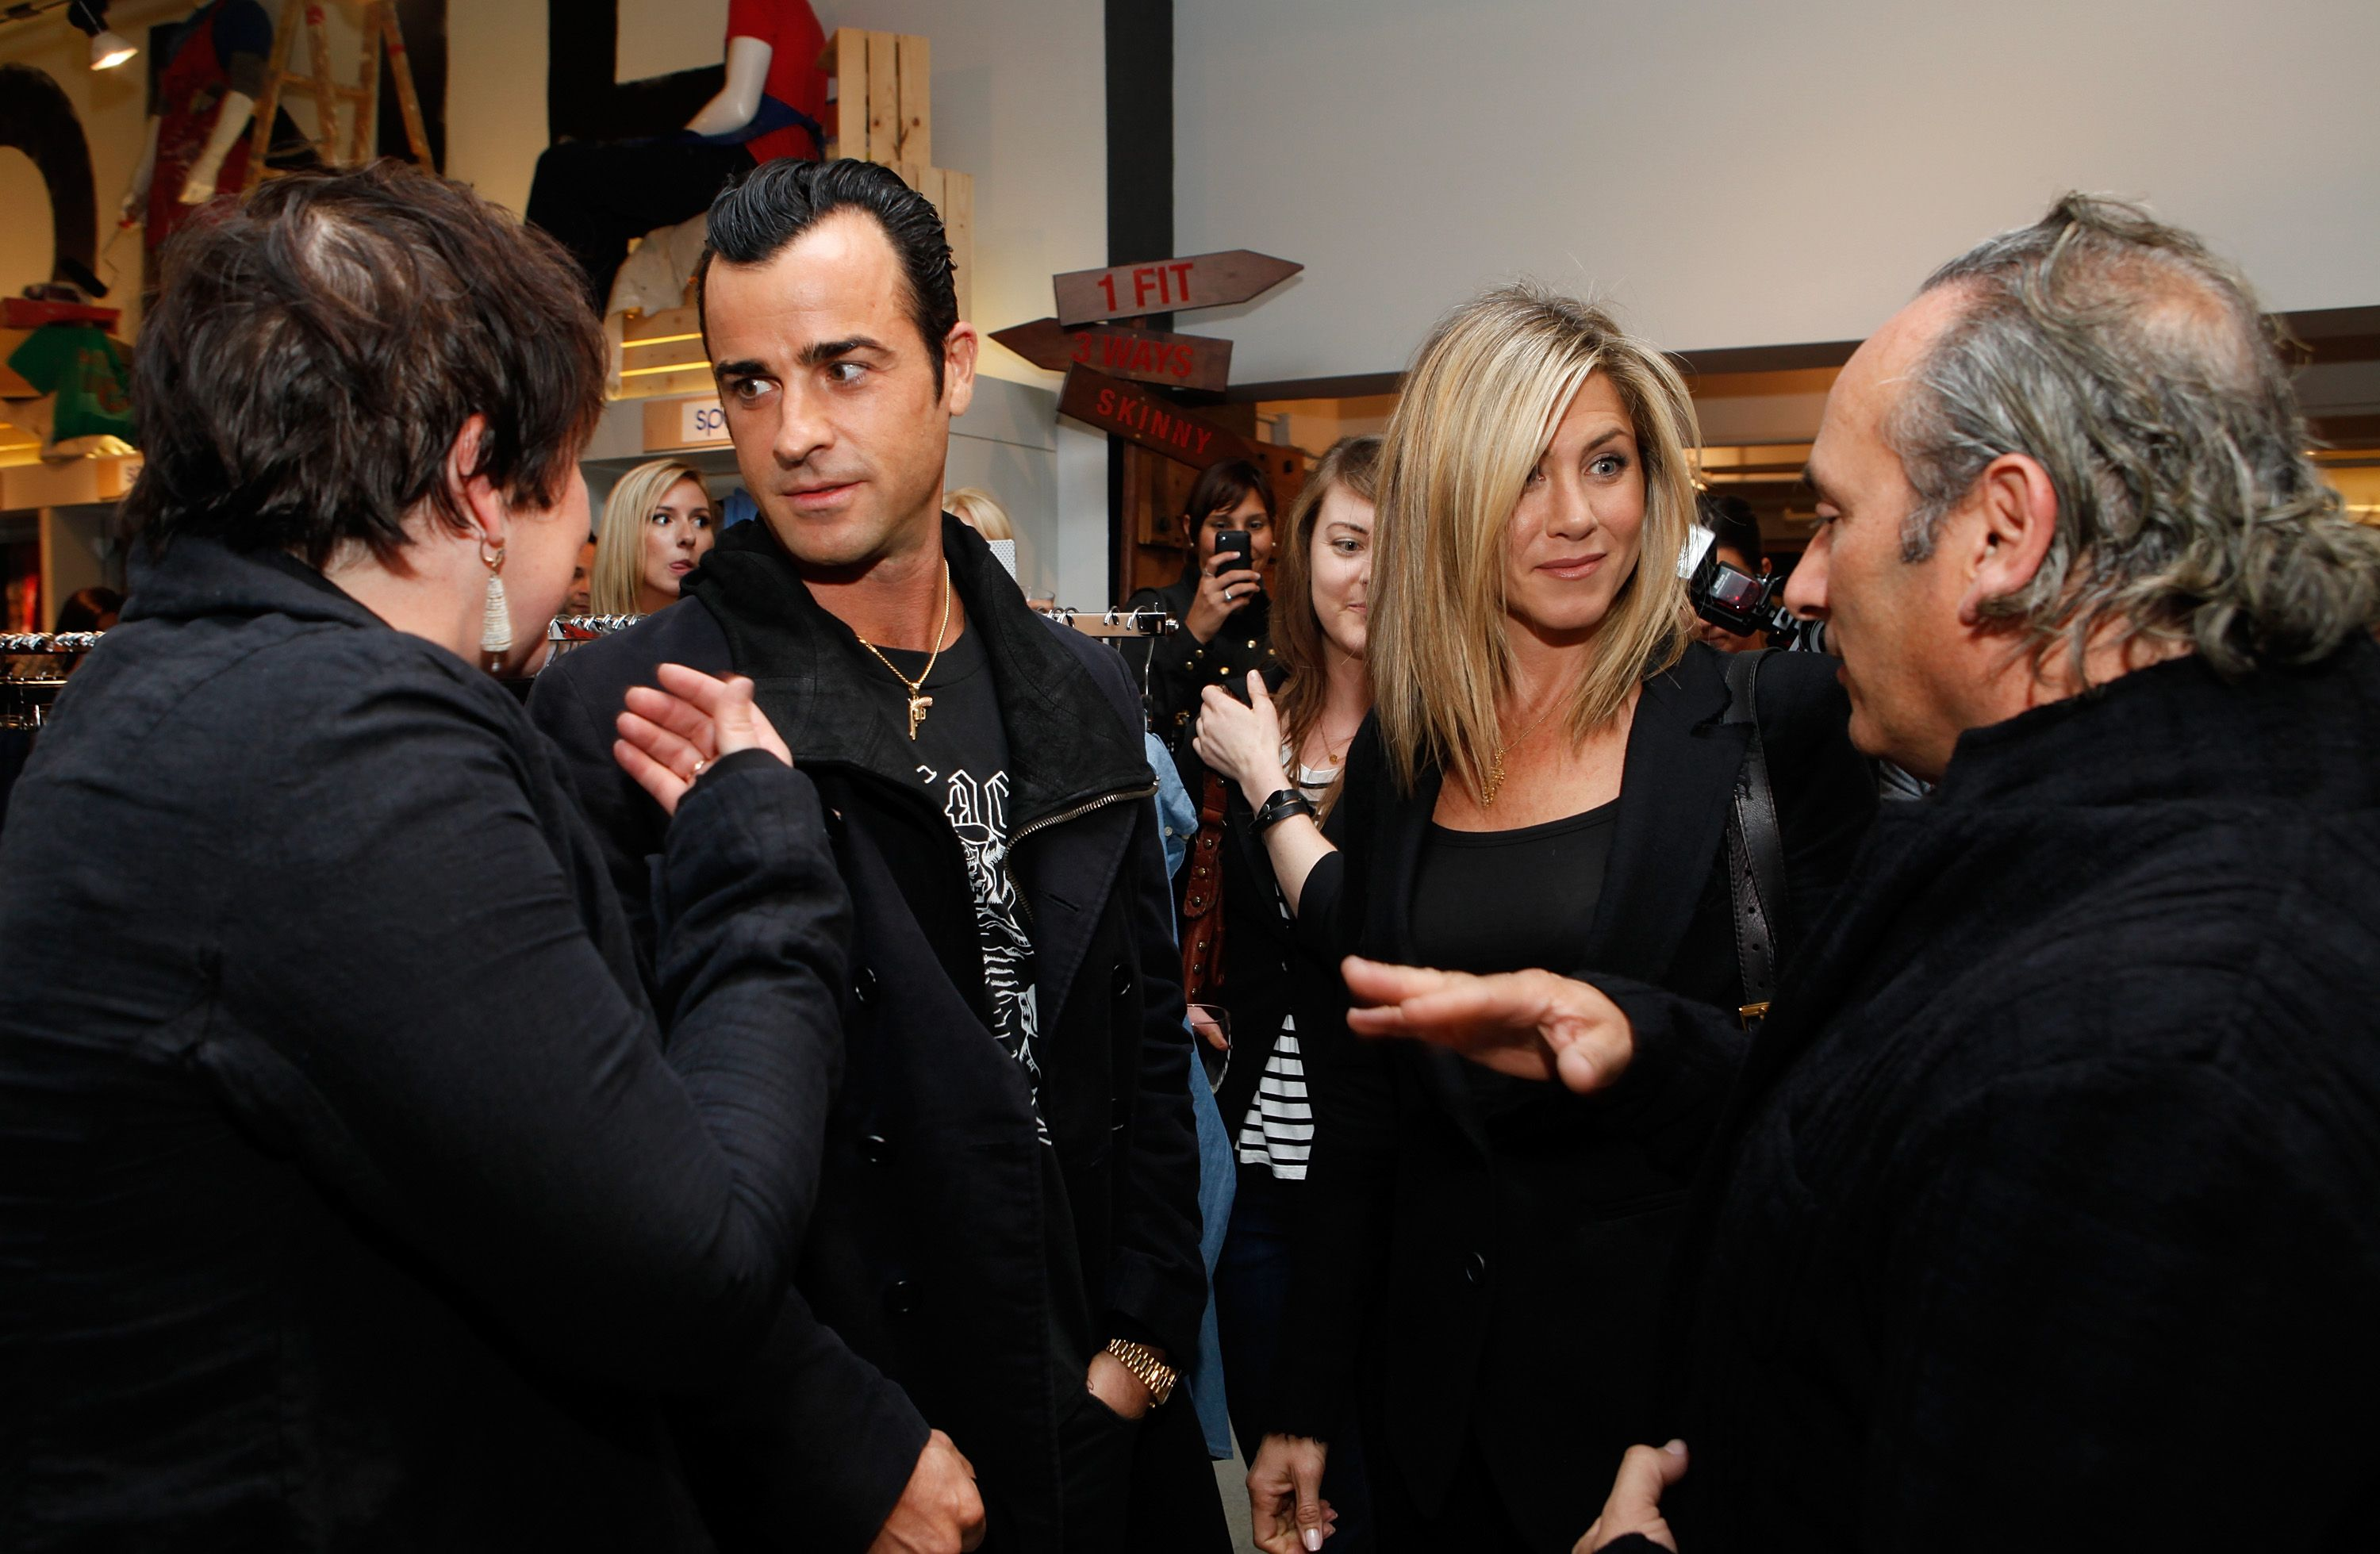 Justin Theroux and Jennifer Aniston relationship timeline